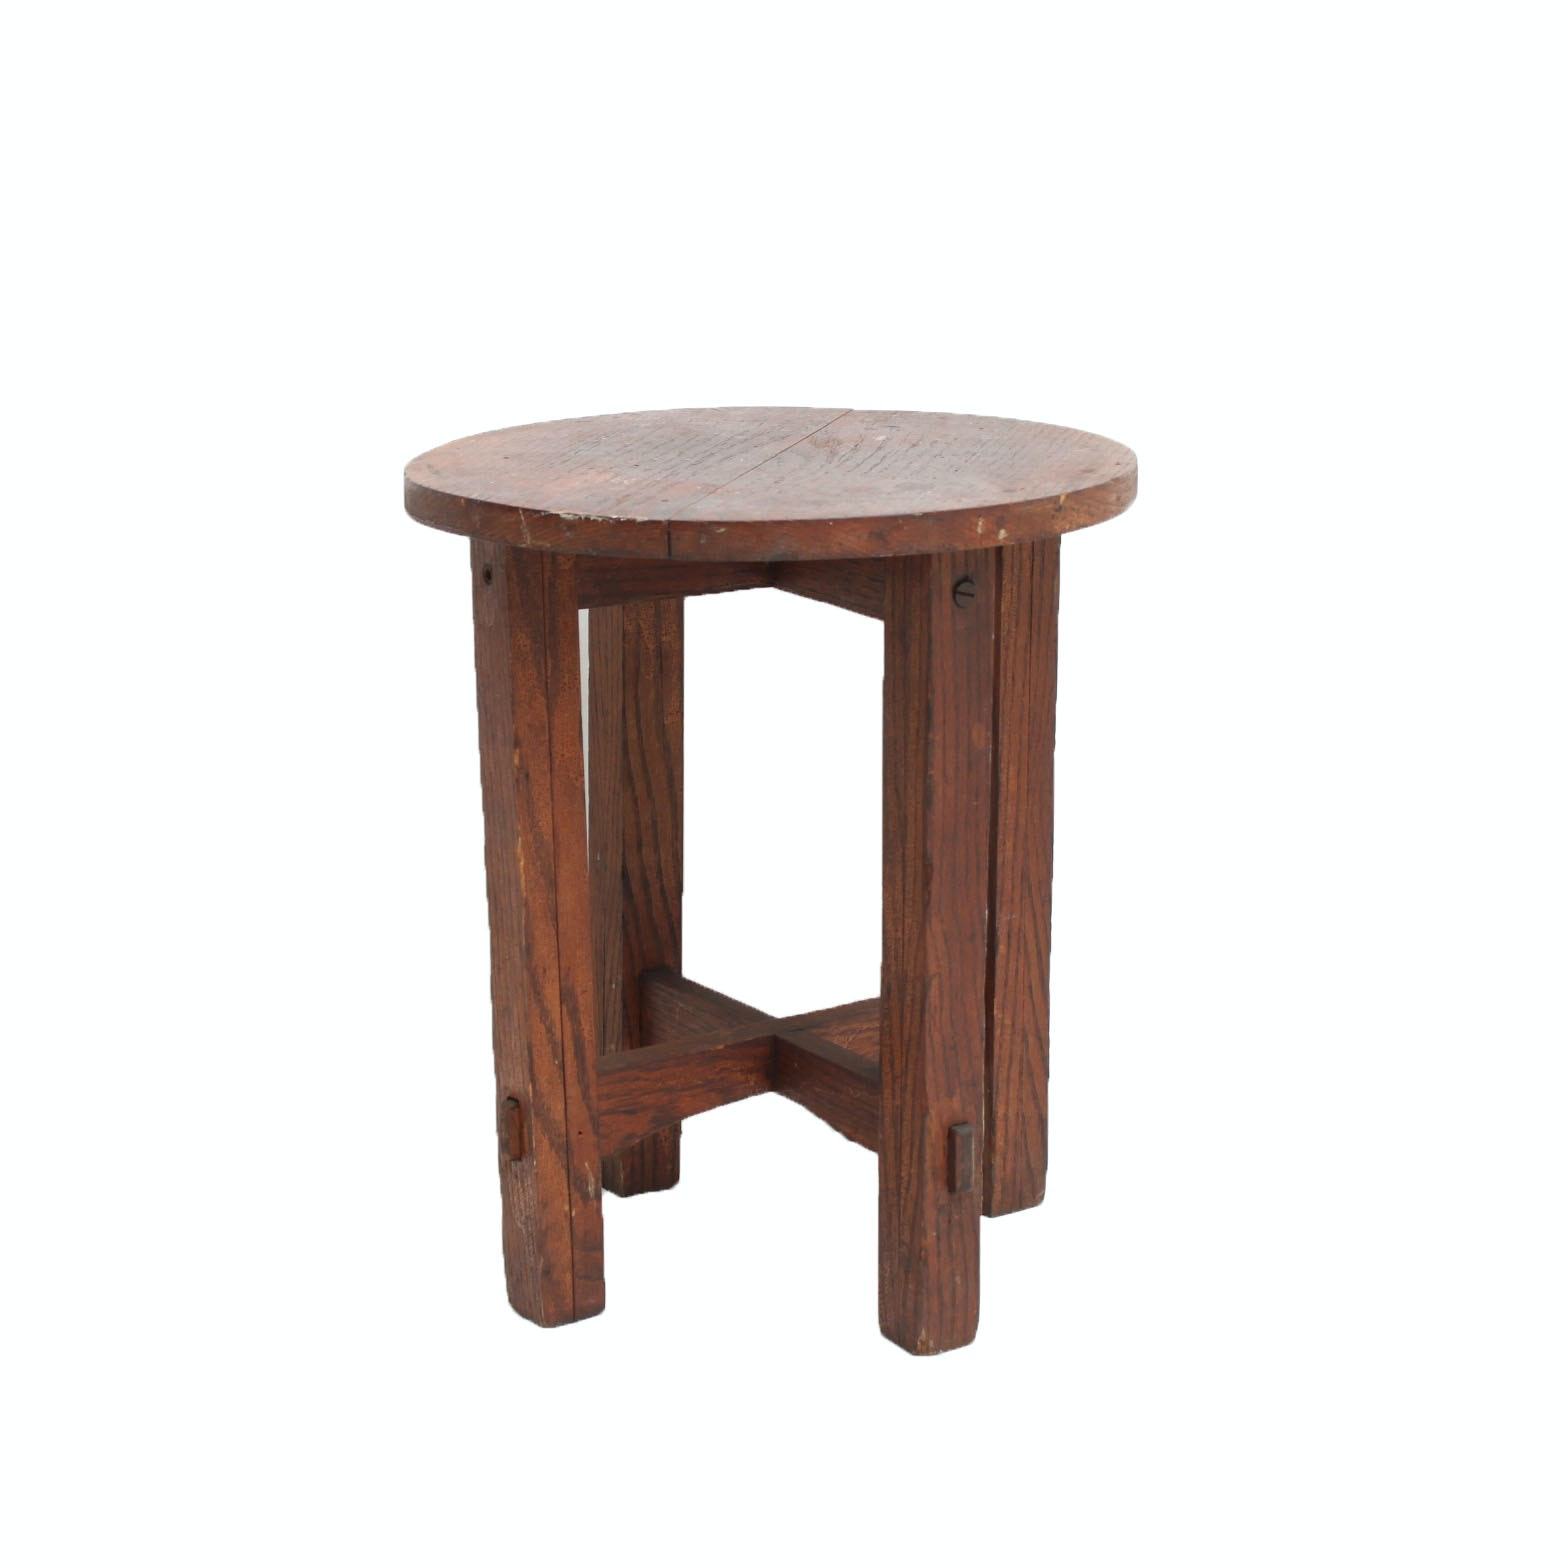 Vintage Mission Style Handmade Oak Accent Table